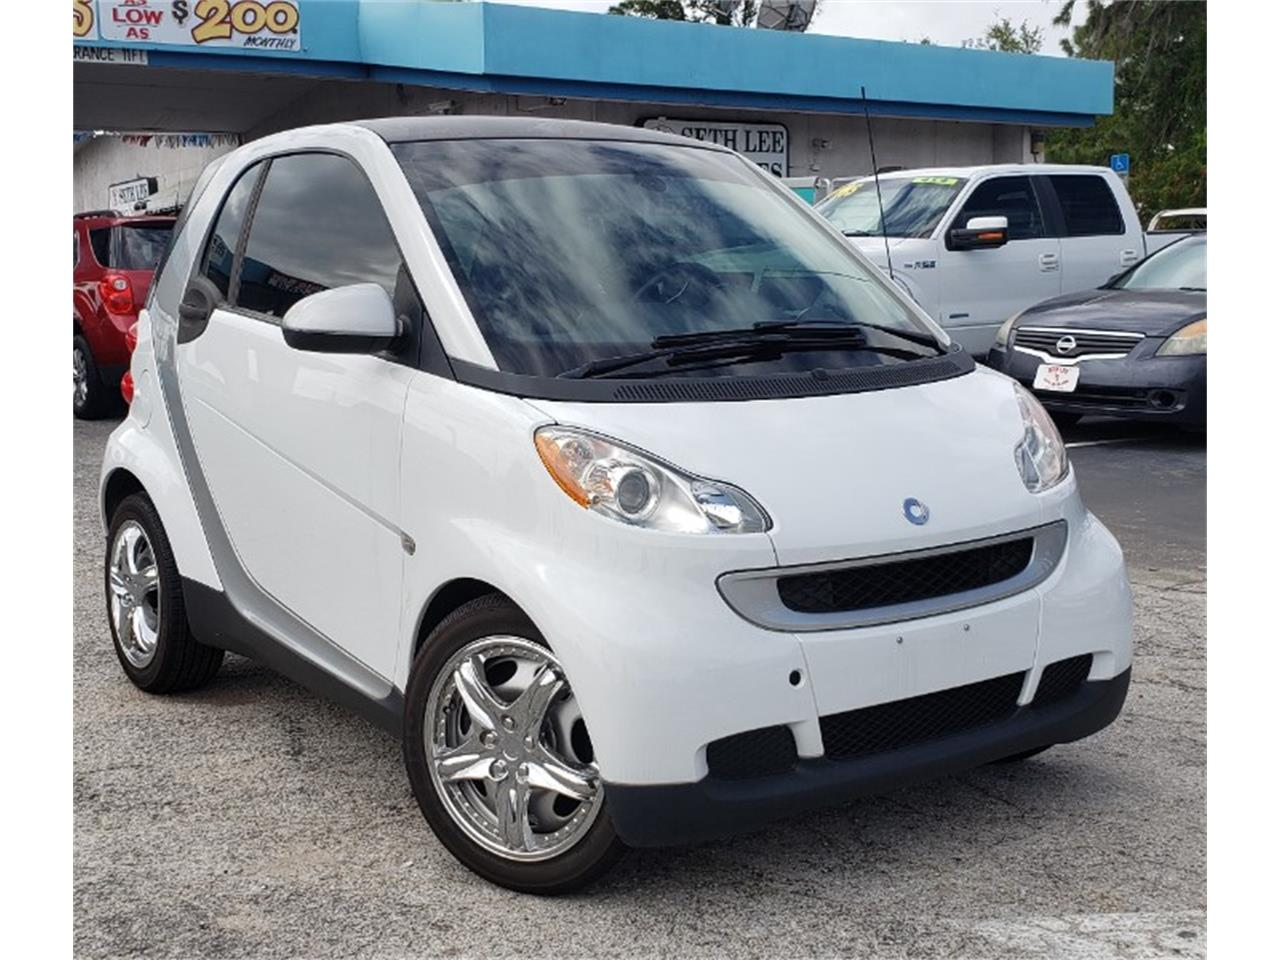 Large Picture of '12 Smart Fortwo Offered by Seth Lee Auto Sales - PQD0